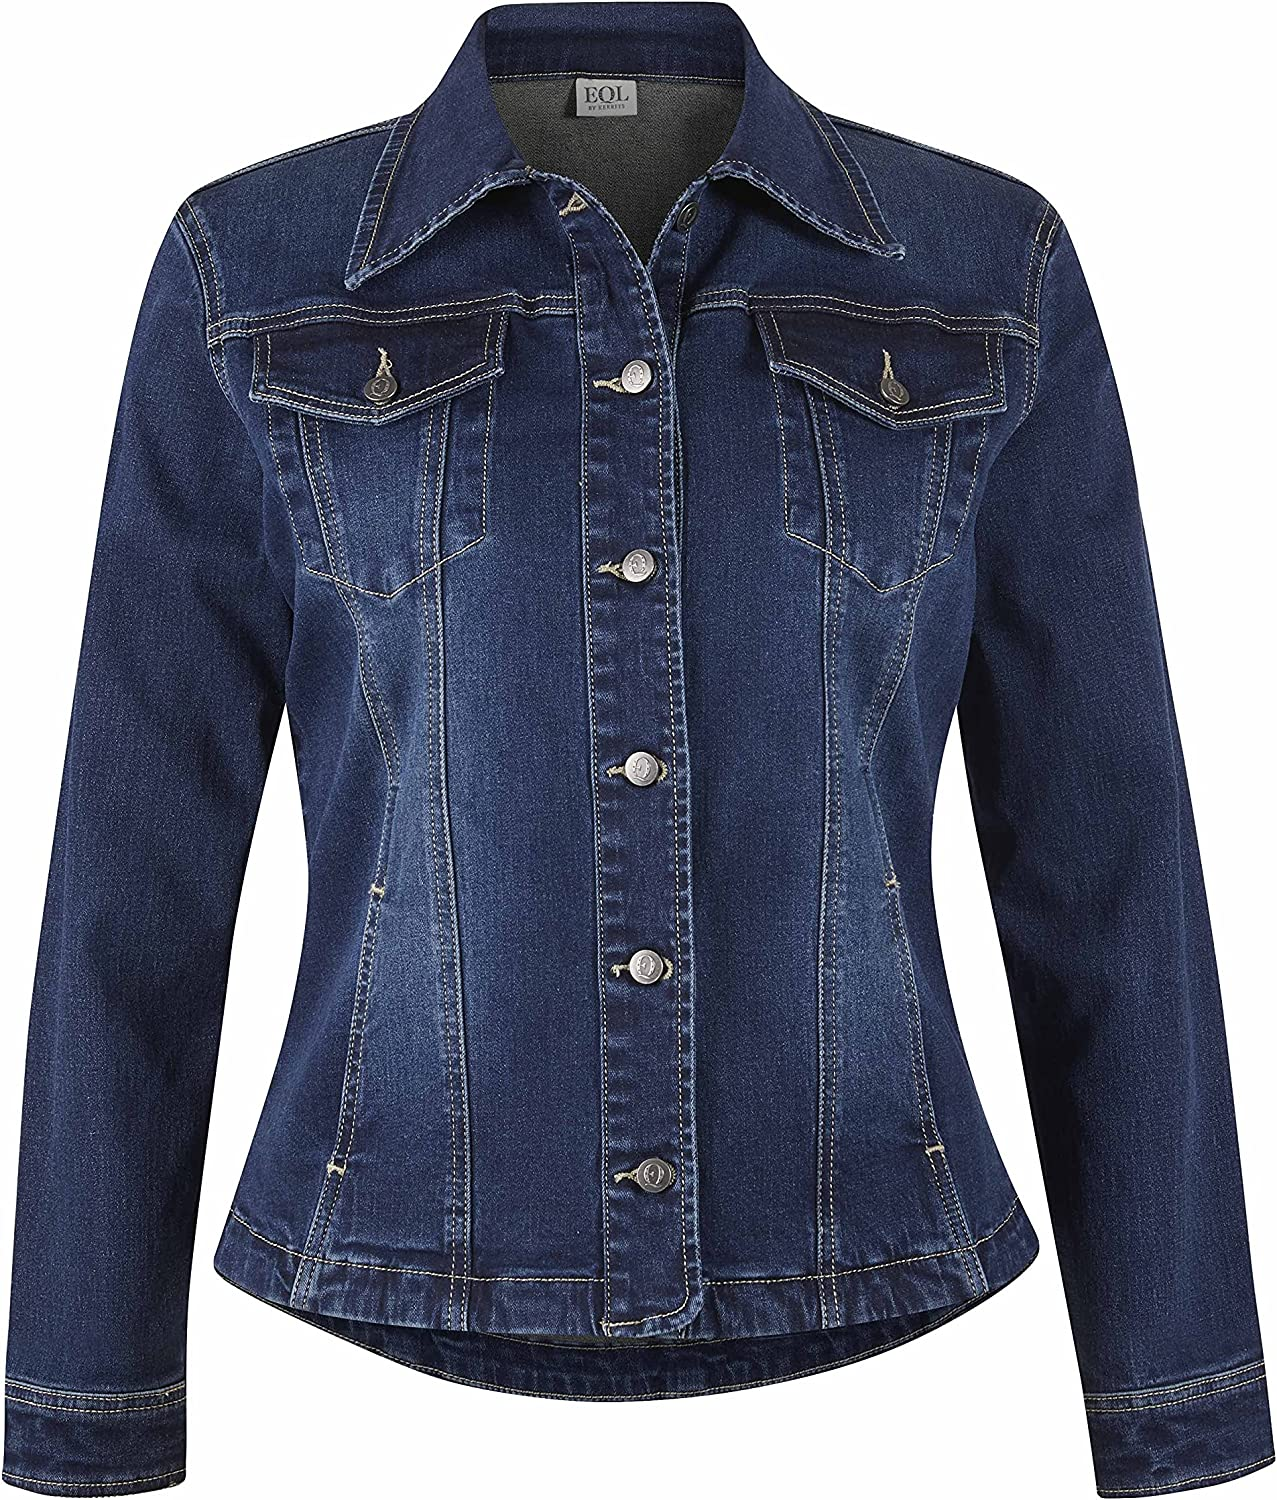 Super-cheap In Motion 5 ☆ very popular Jean Jacket Size: Wash S Midnight